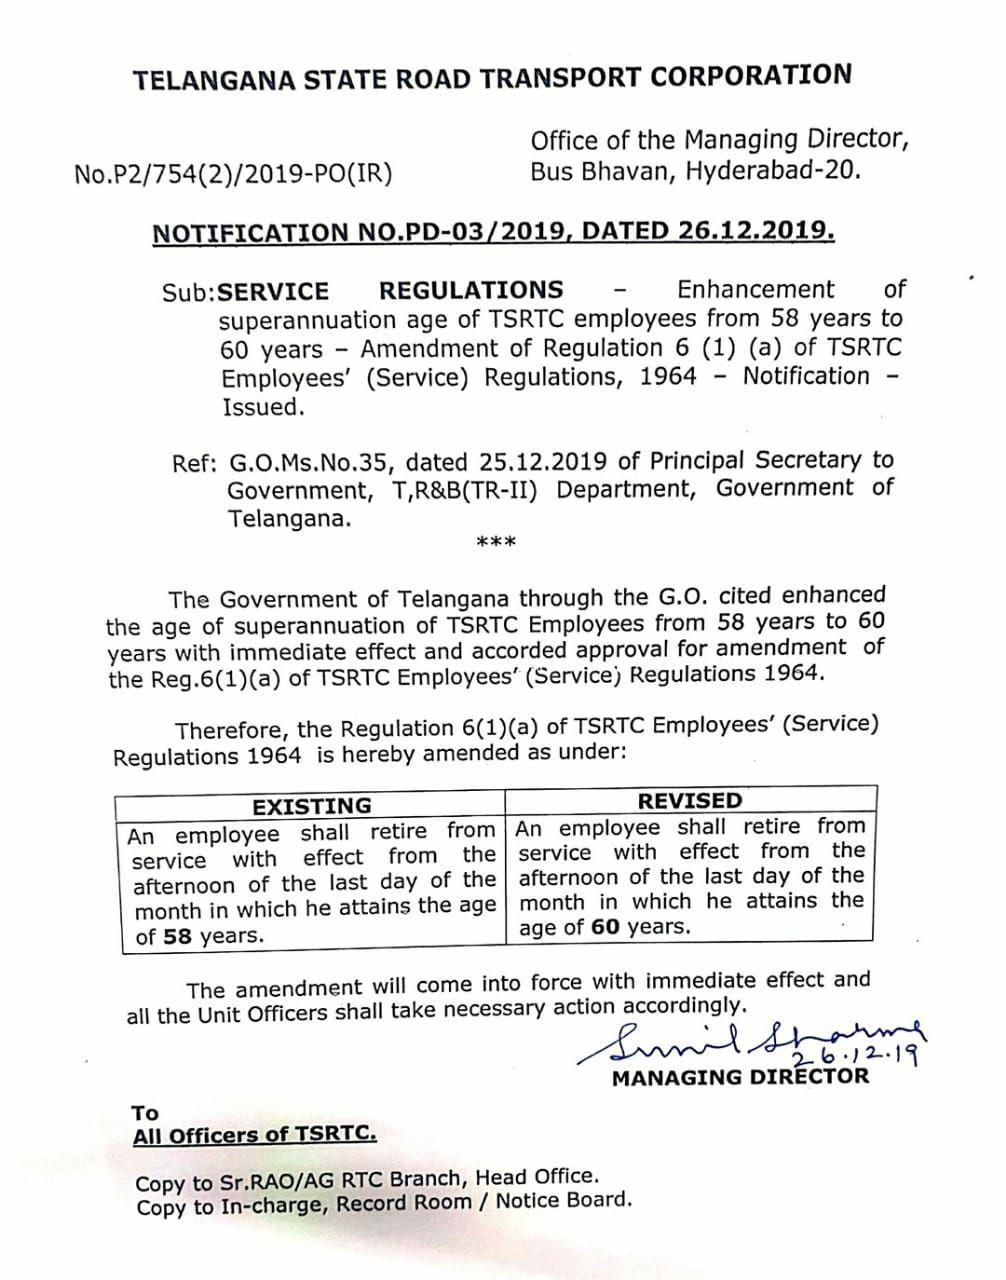 TS TSRTC Employees Retirement Age Enhanced from 58 to 60 years/2019/12/ts-tsrtc-employees-retirement-age-enhanced-to-60-years.html